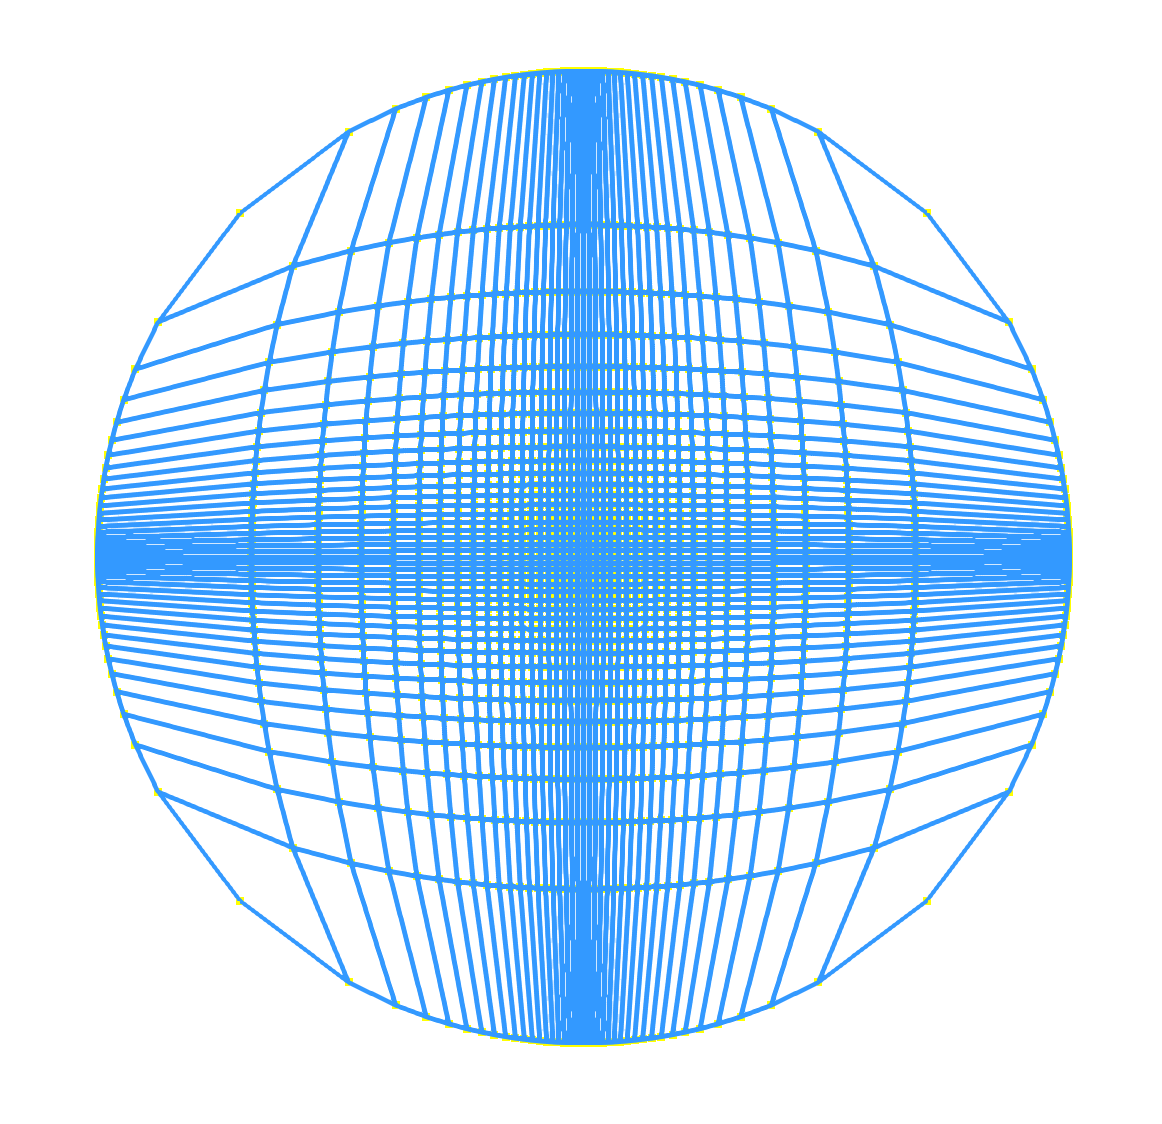 length of the minimal geodesic that joins x i to C. Then ε = ρ d (v 1, x) r 1. The sign of ε is negative if x i is in the interior of C, and is positive if x i is in the exterior.